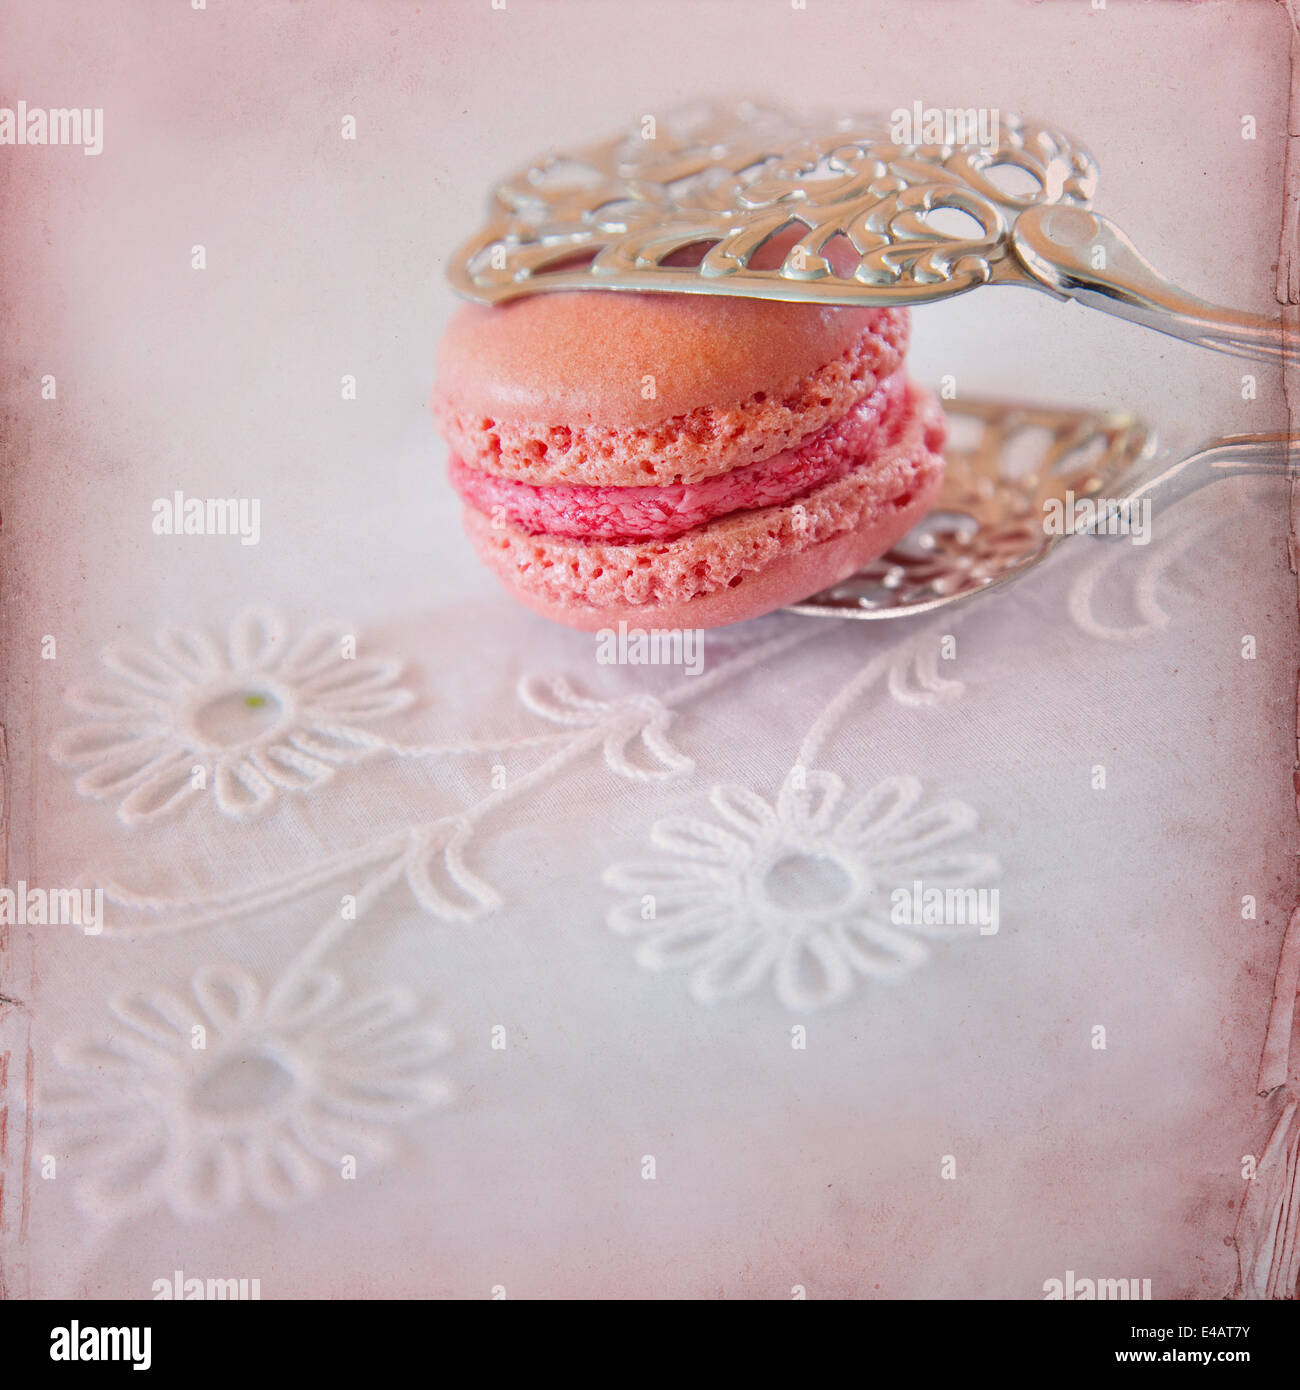 Macarons sucrés papier fond Photo Stock